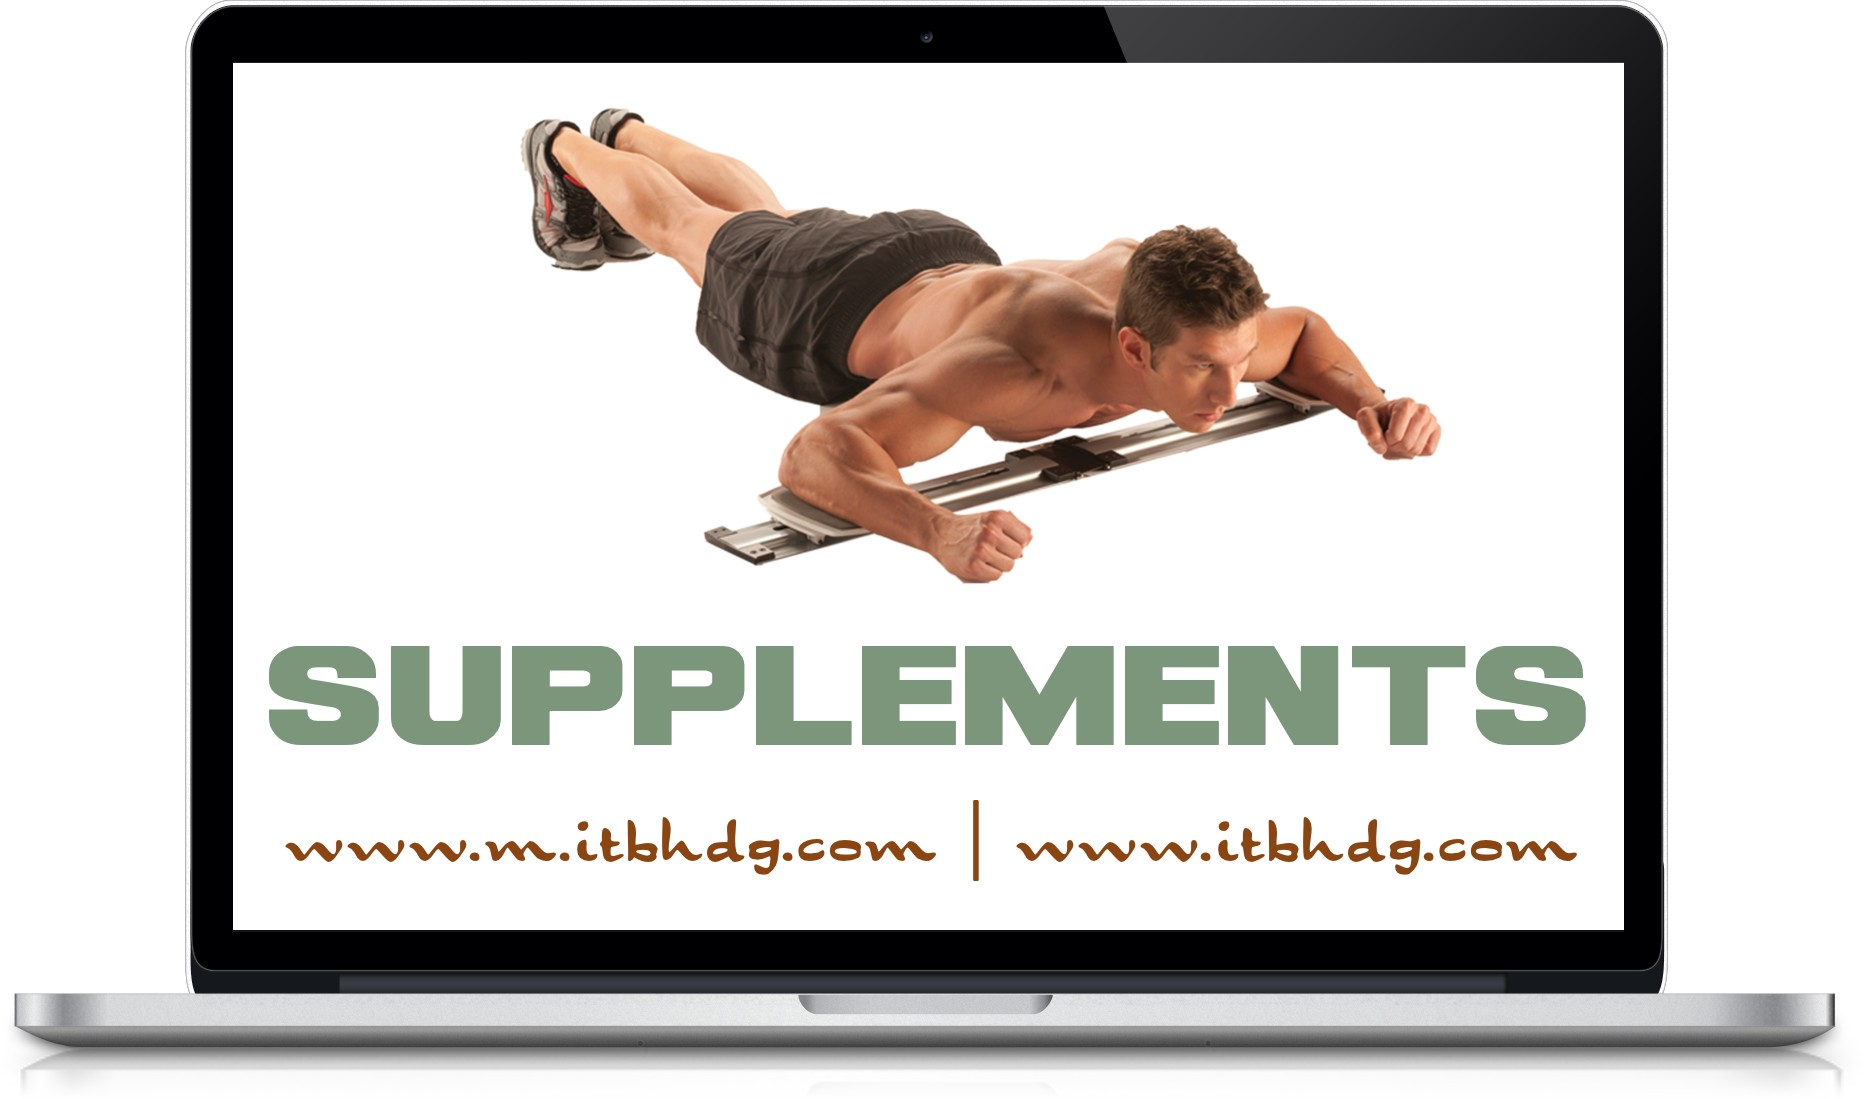 FDA Registration of your Dietary Supplements Company | www.m.itbhdg.com | www.itbhdg.com